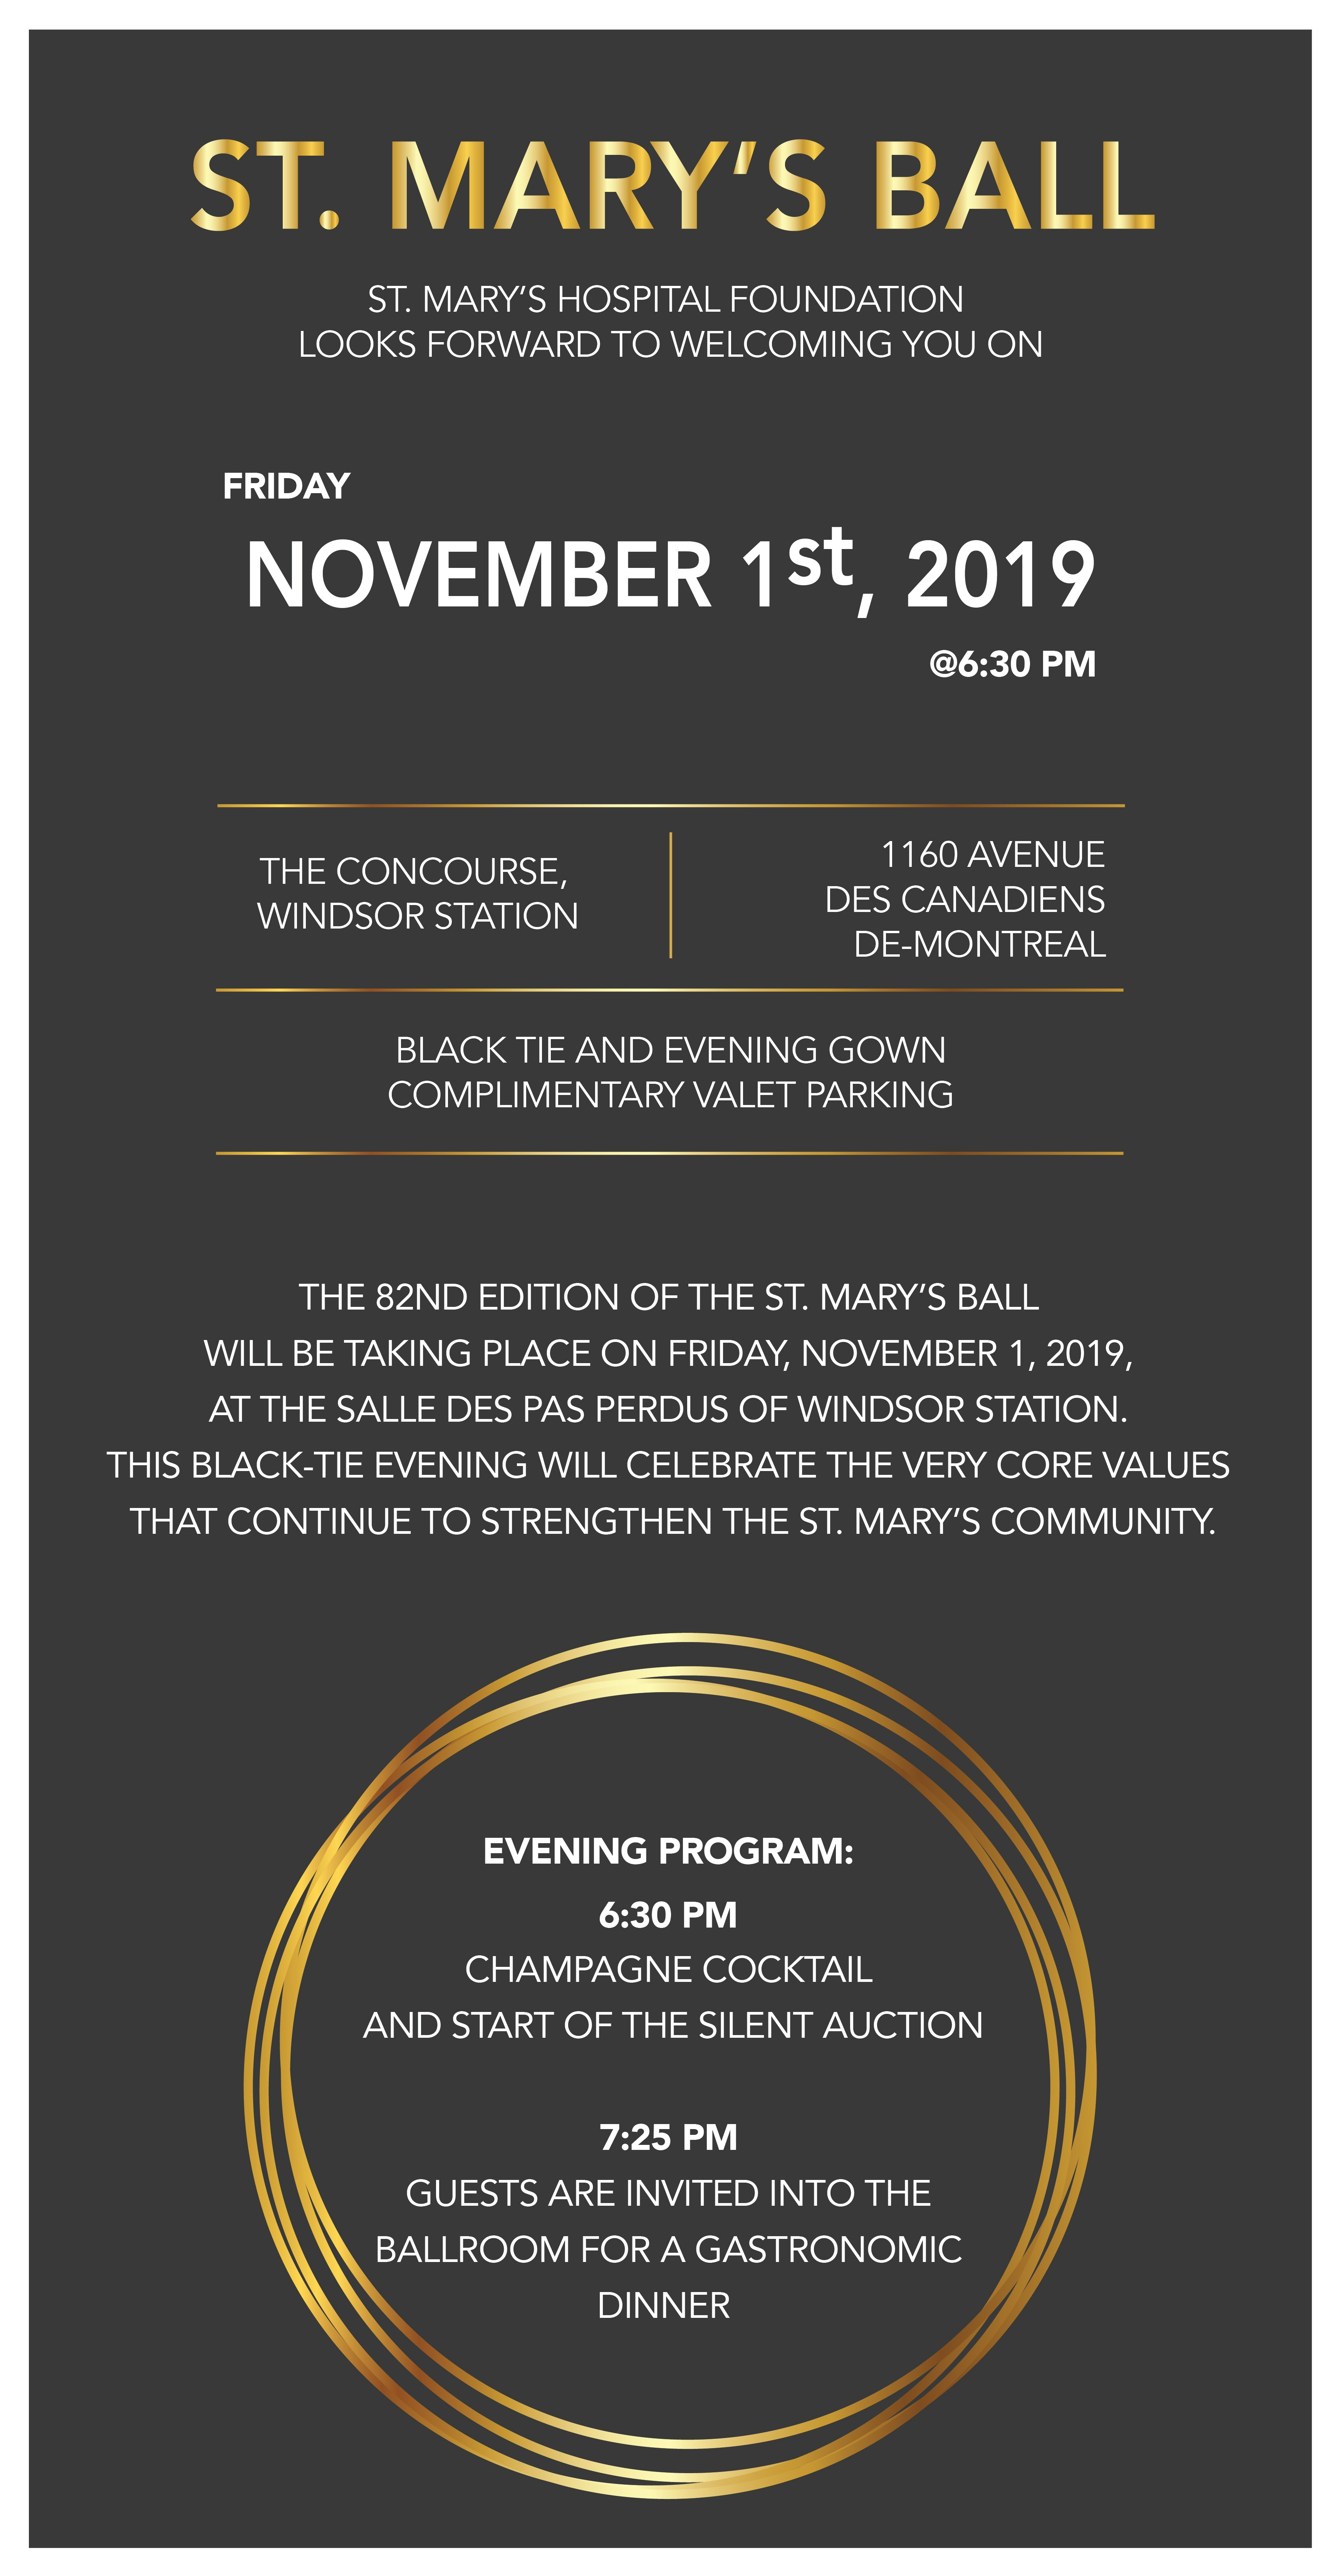 St. Mary's 82nd Ball - November 1, 2019